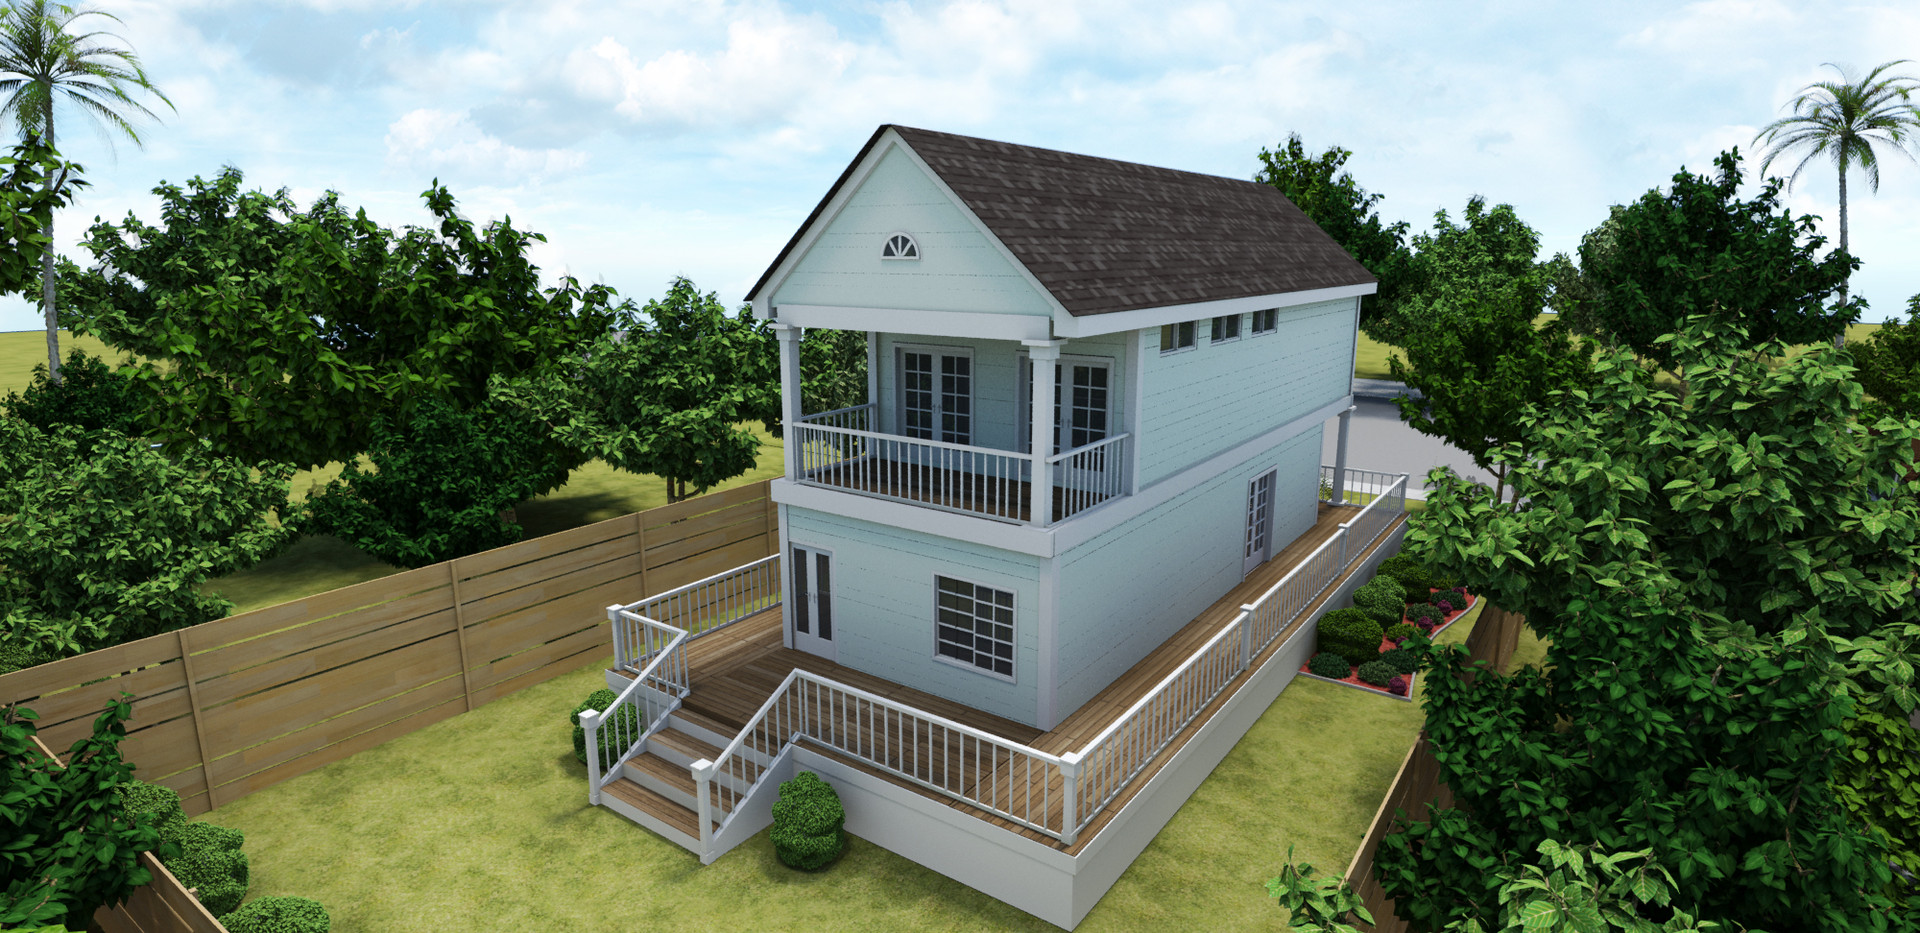 Traditonal Style Container Home View 2